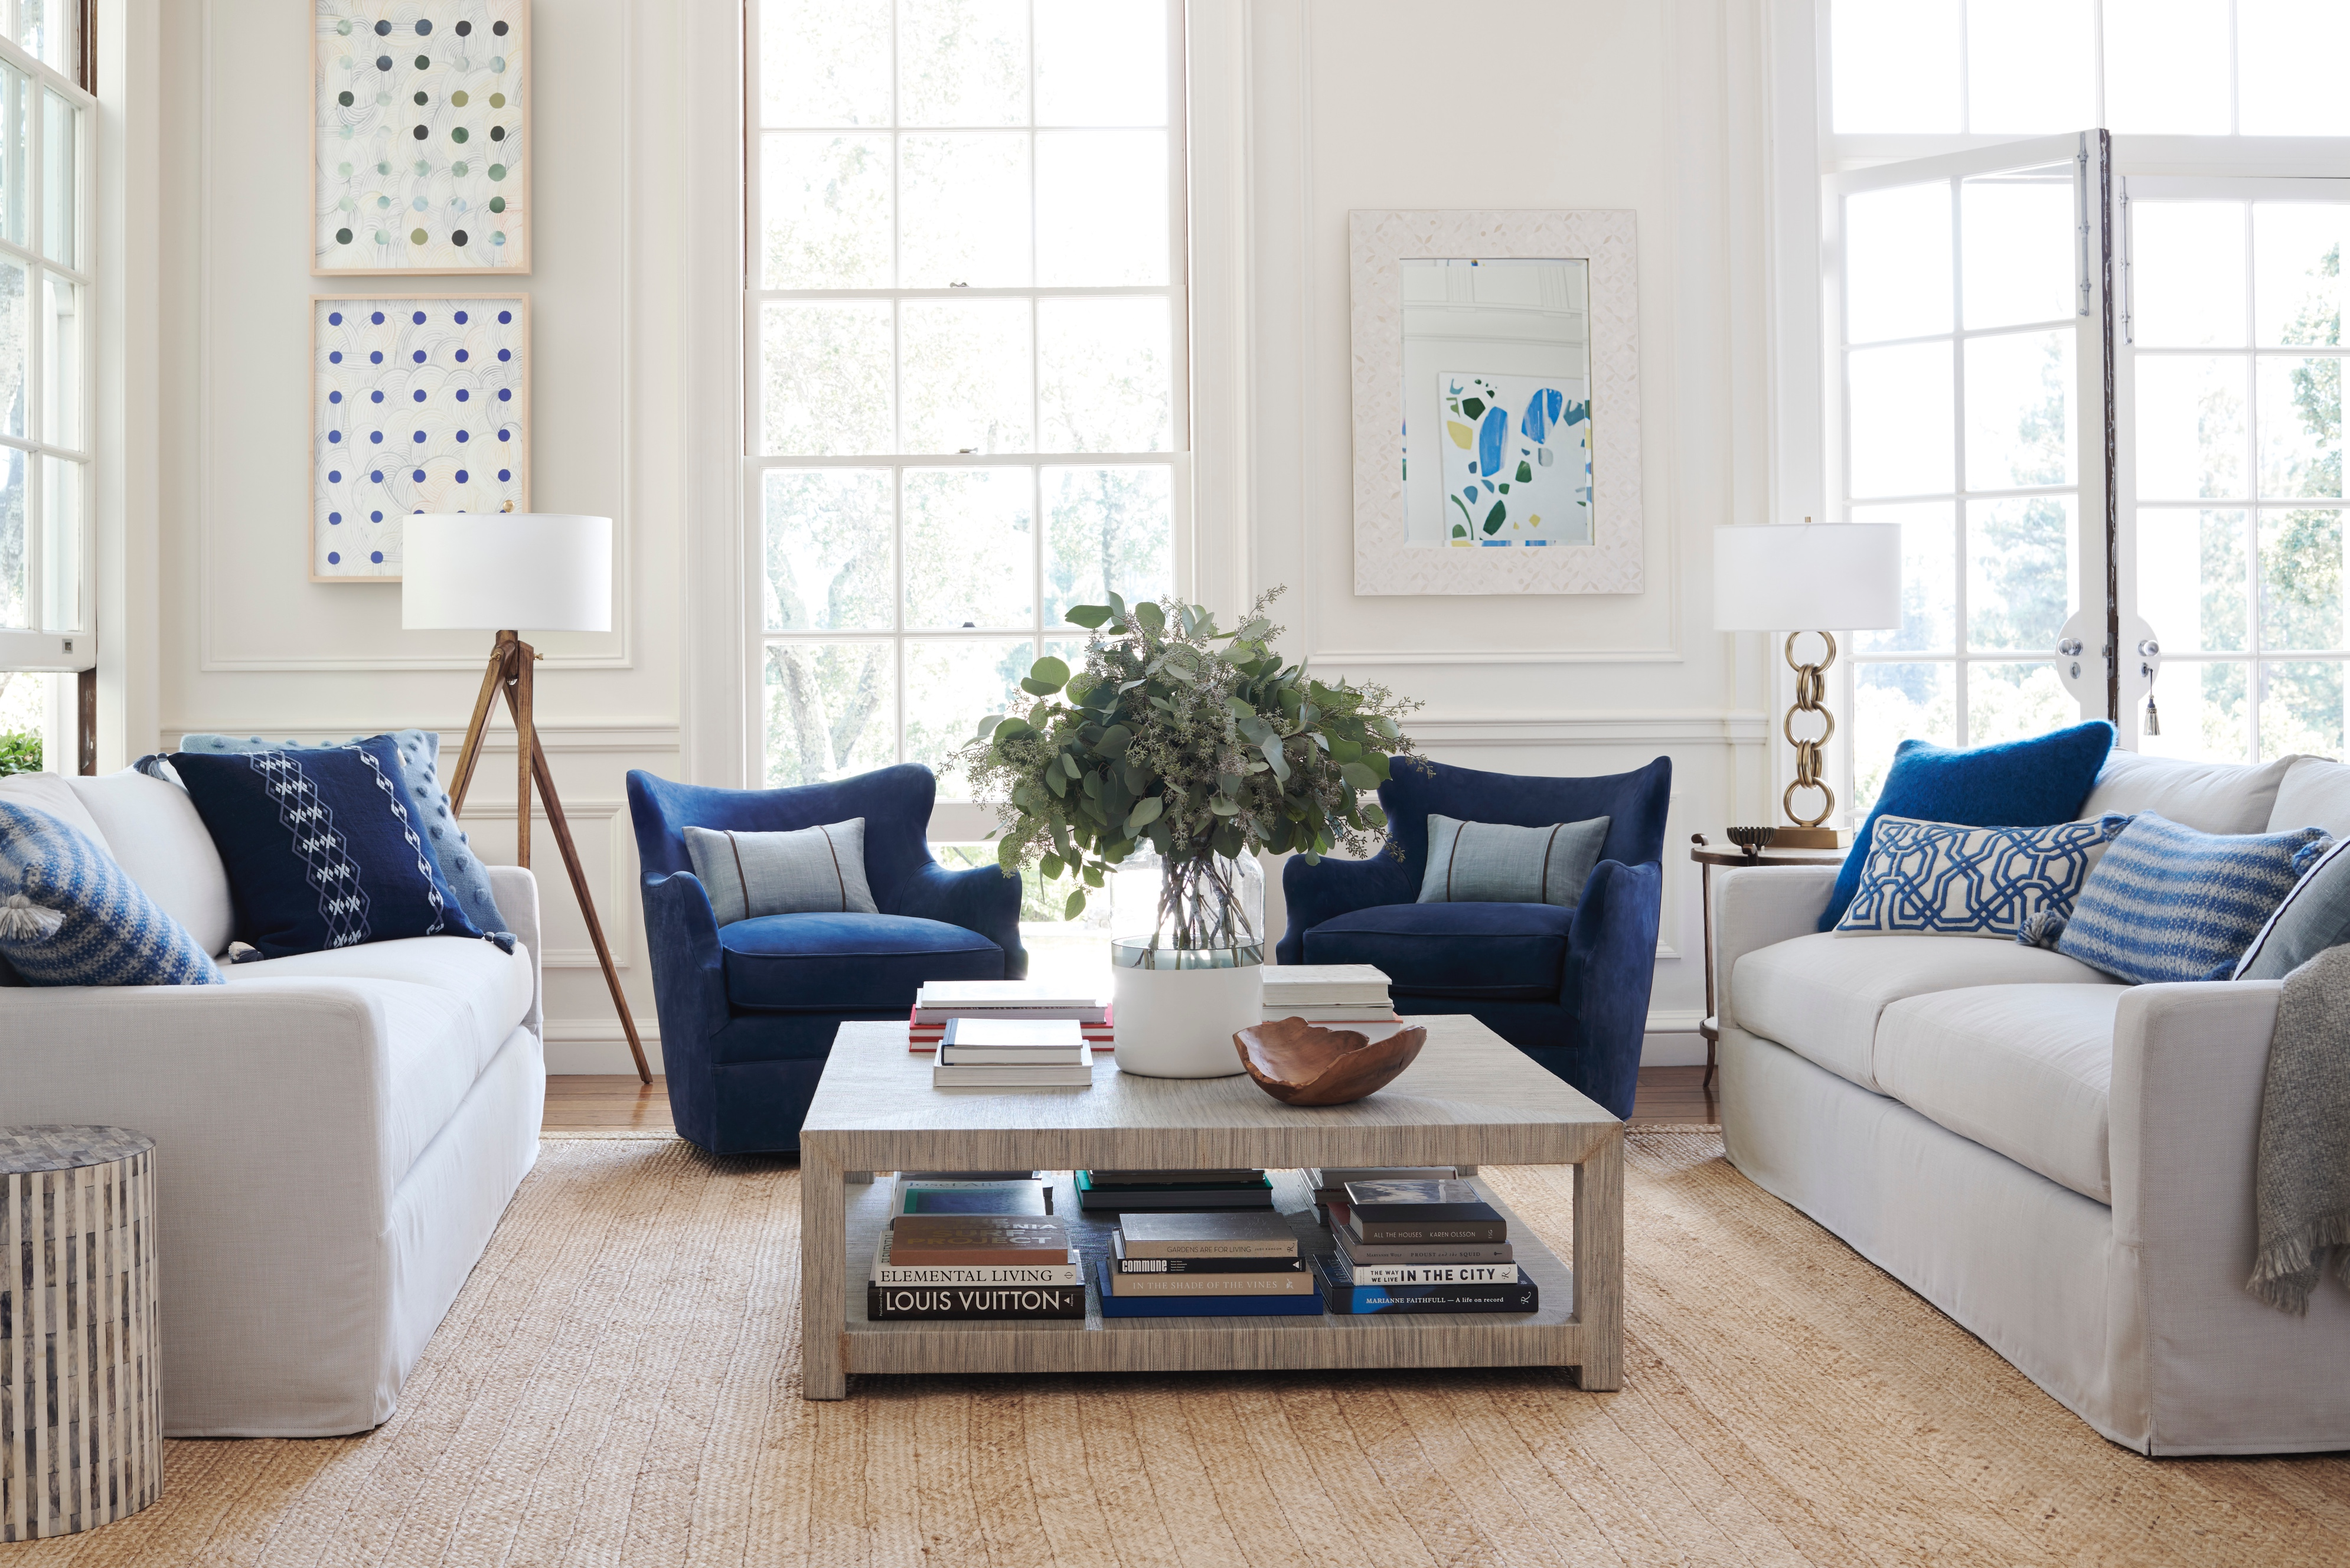 Shop the Look: Living Room - Designer Rooms | Serena & Lily